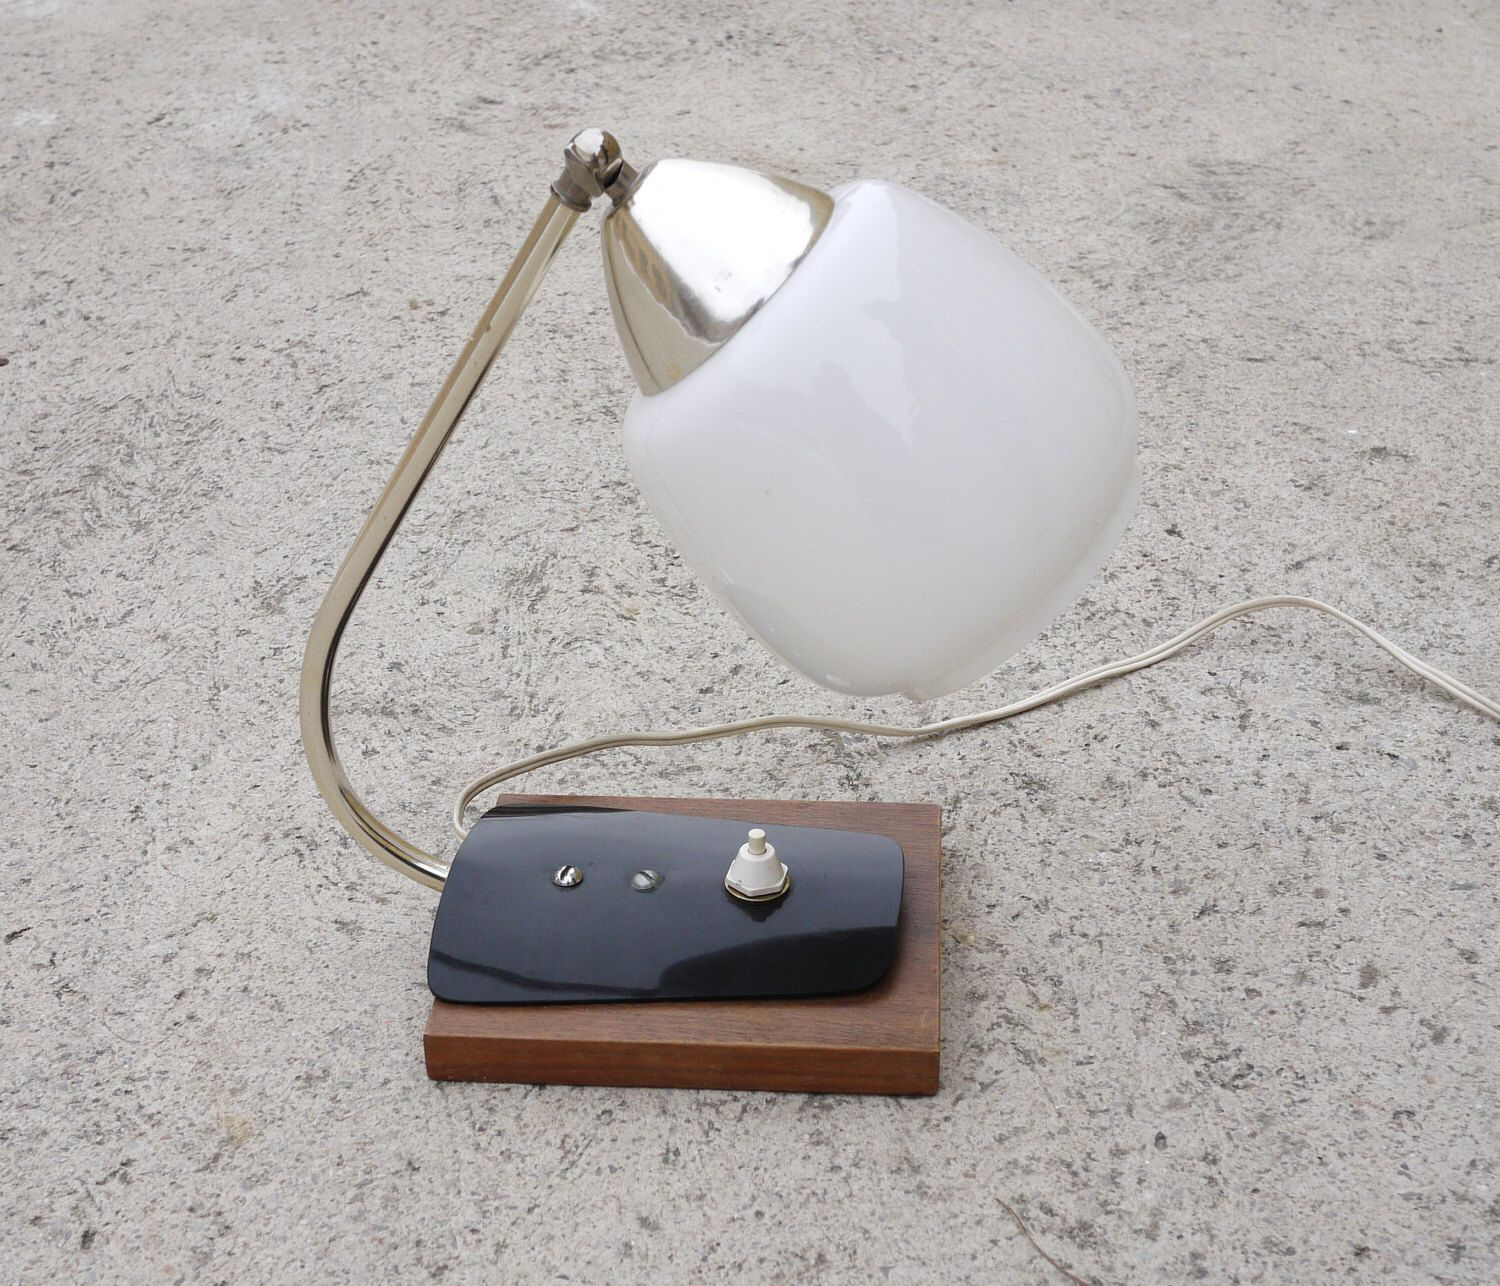 Chrome night lamps - Glass Bedside Lamp White Opaline Glass Shade 1950s Wooden Base Black Plexiglass Adjustable Shade Chrome Stand Night Lamp Diffuse Soft Light